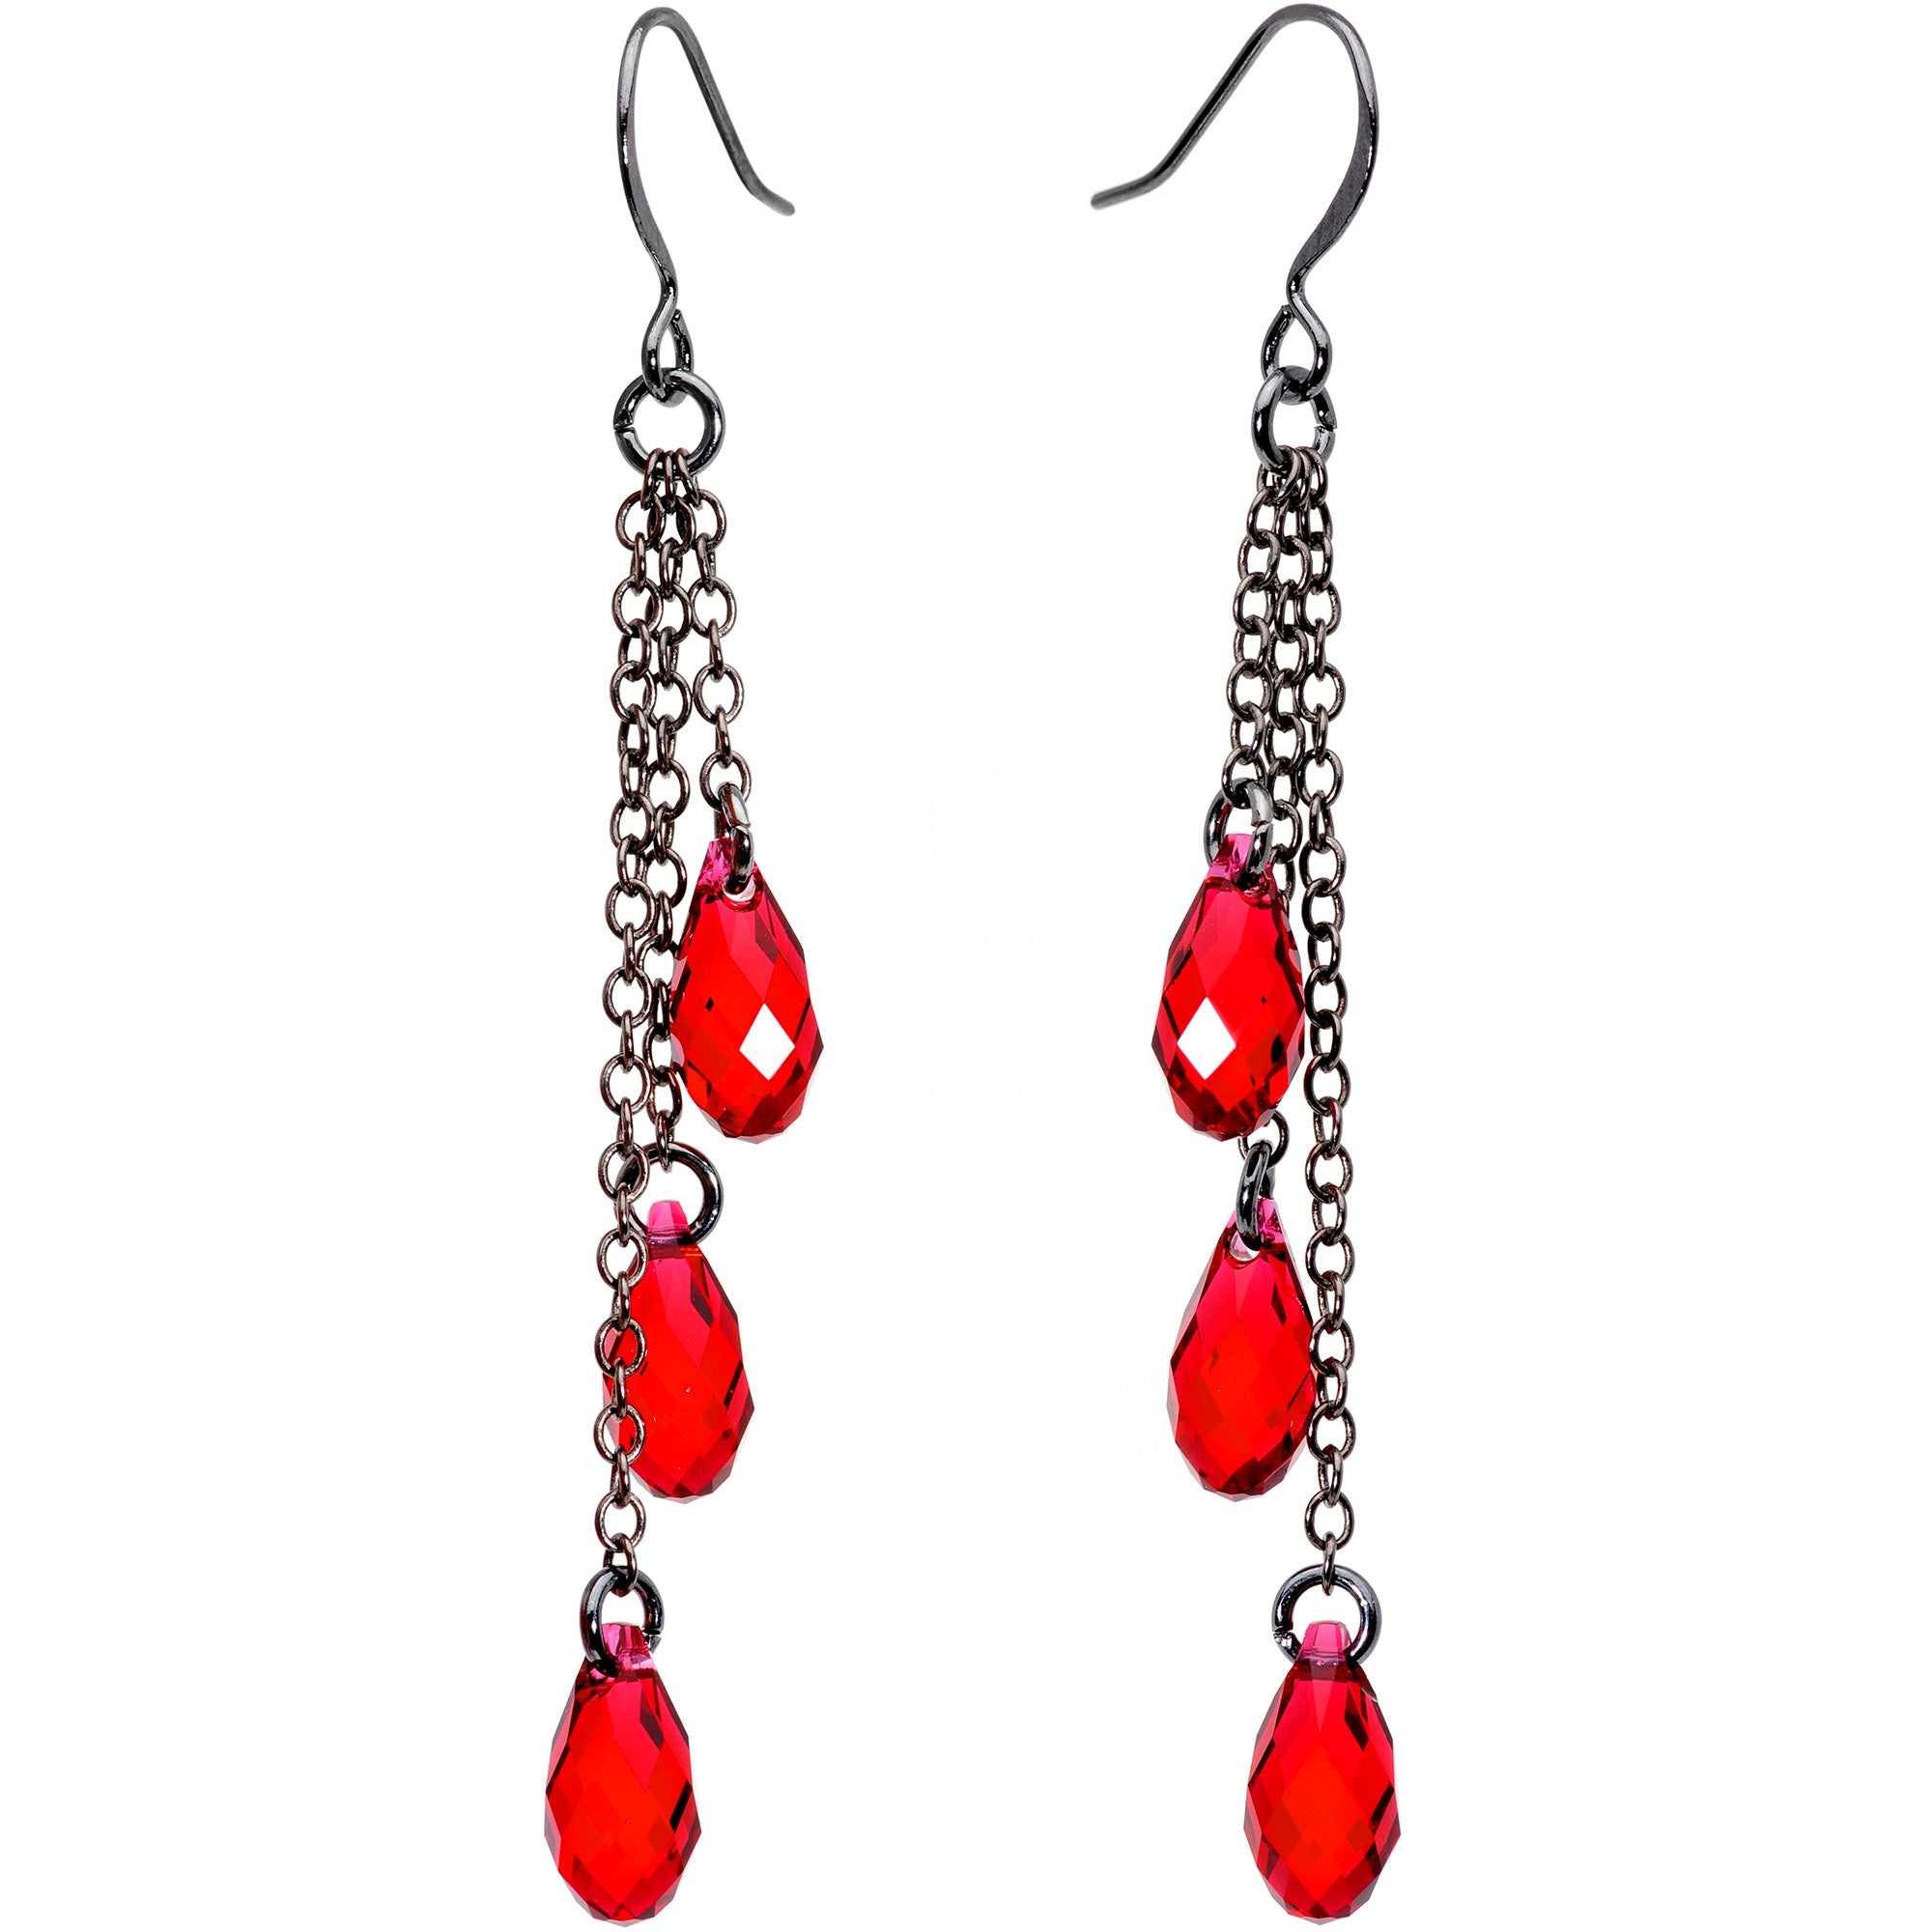 Handmade Vampire Drop Dangle Earrings Created with Swarovski Crystals